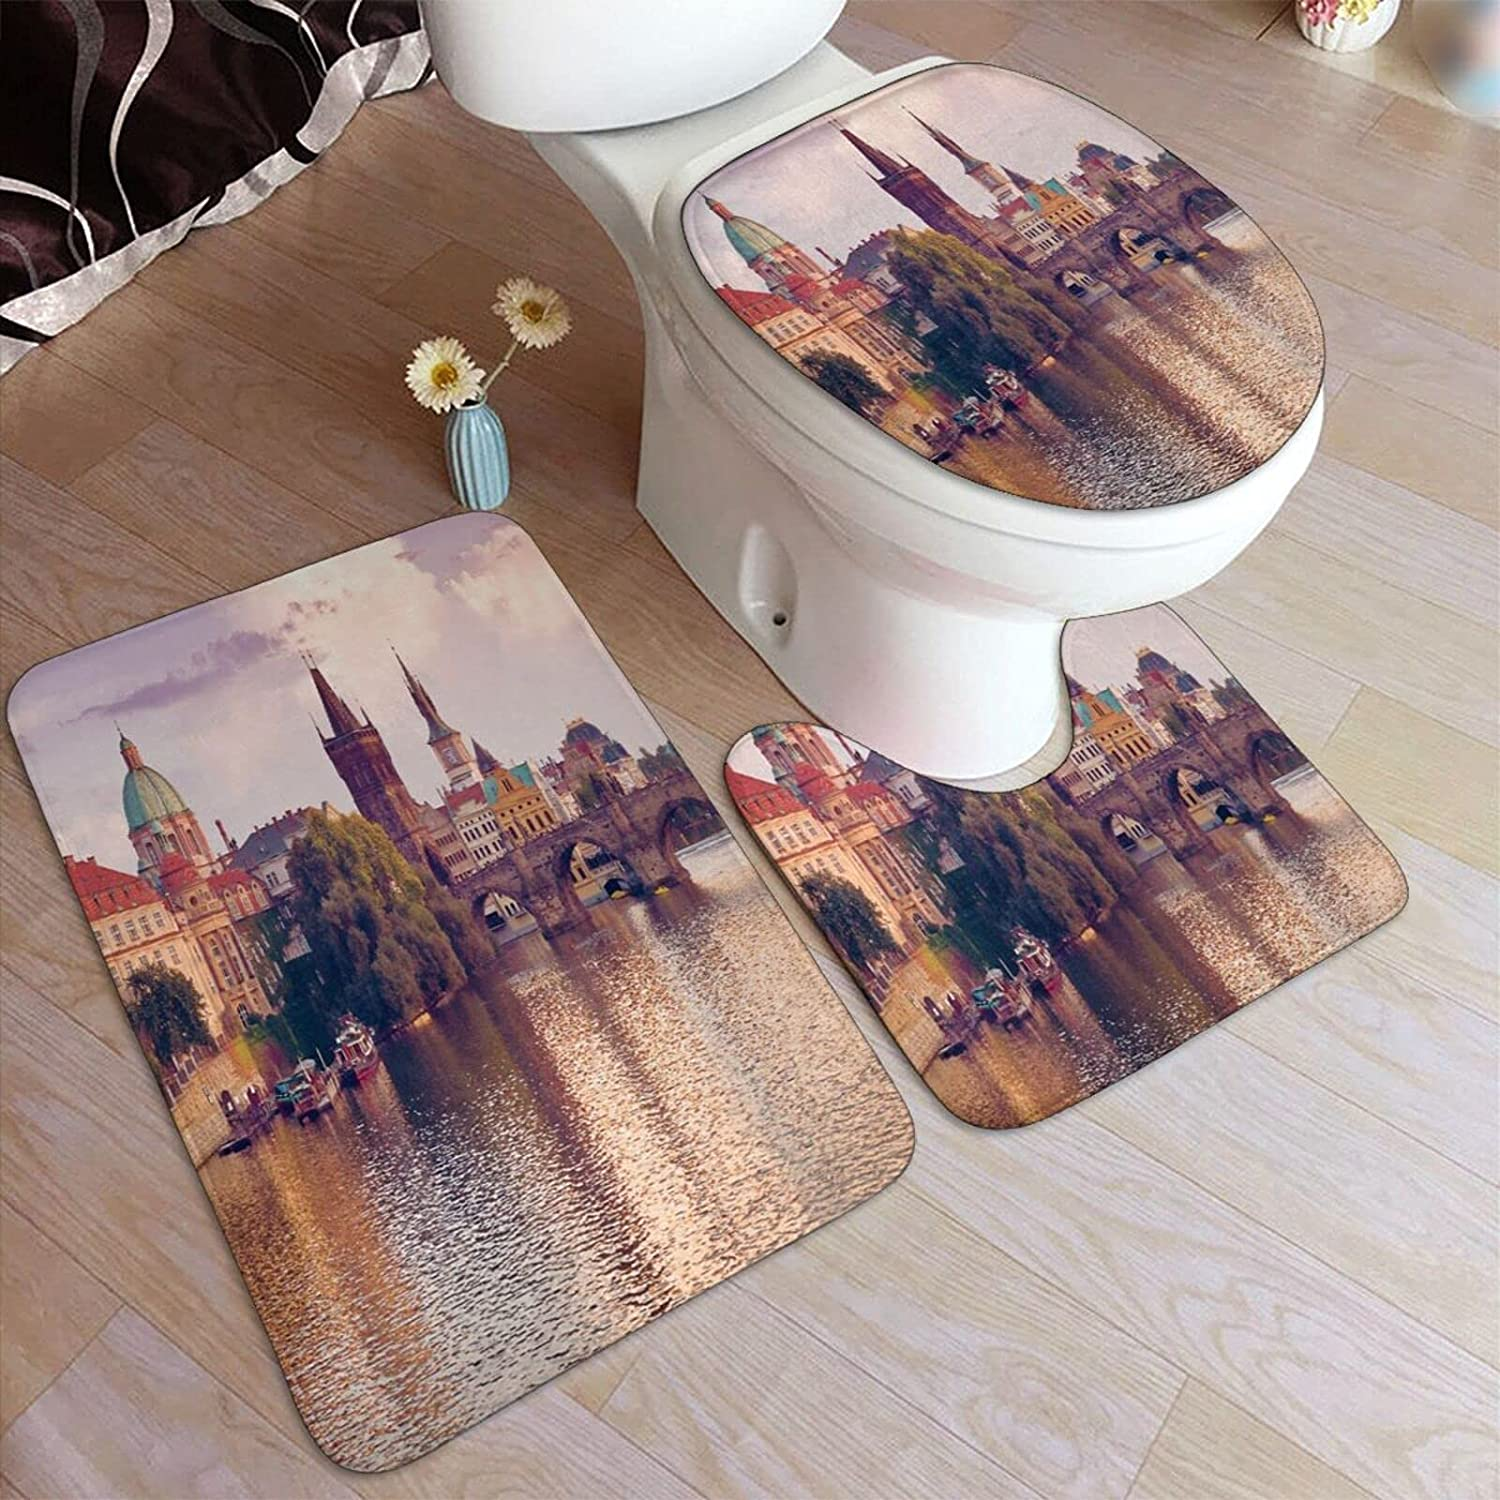 ZOANEN Home Goods 3 Piece Bathroom Inexpensive 70% OFF Outlet Includes Bath Set Co Rug